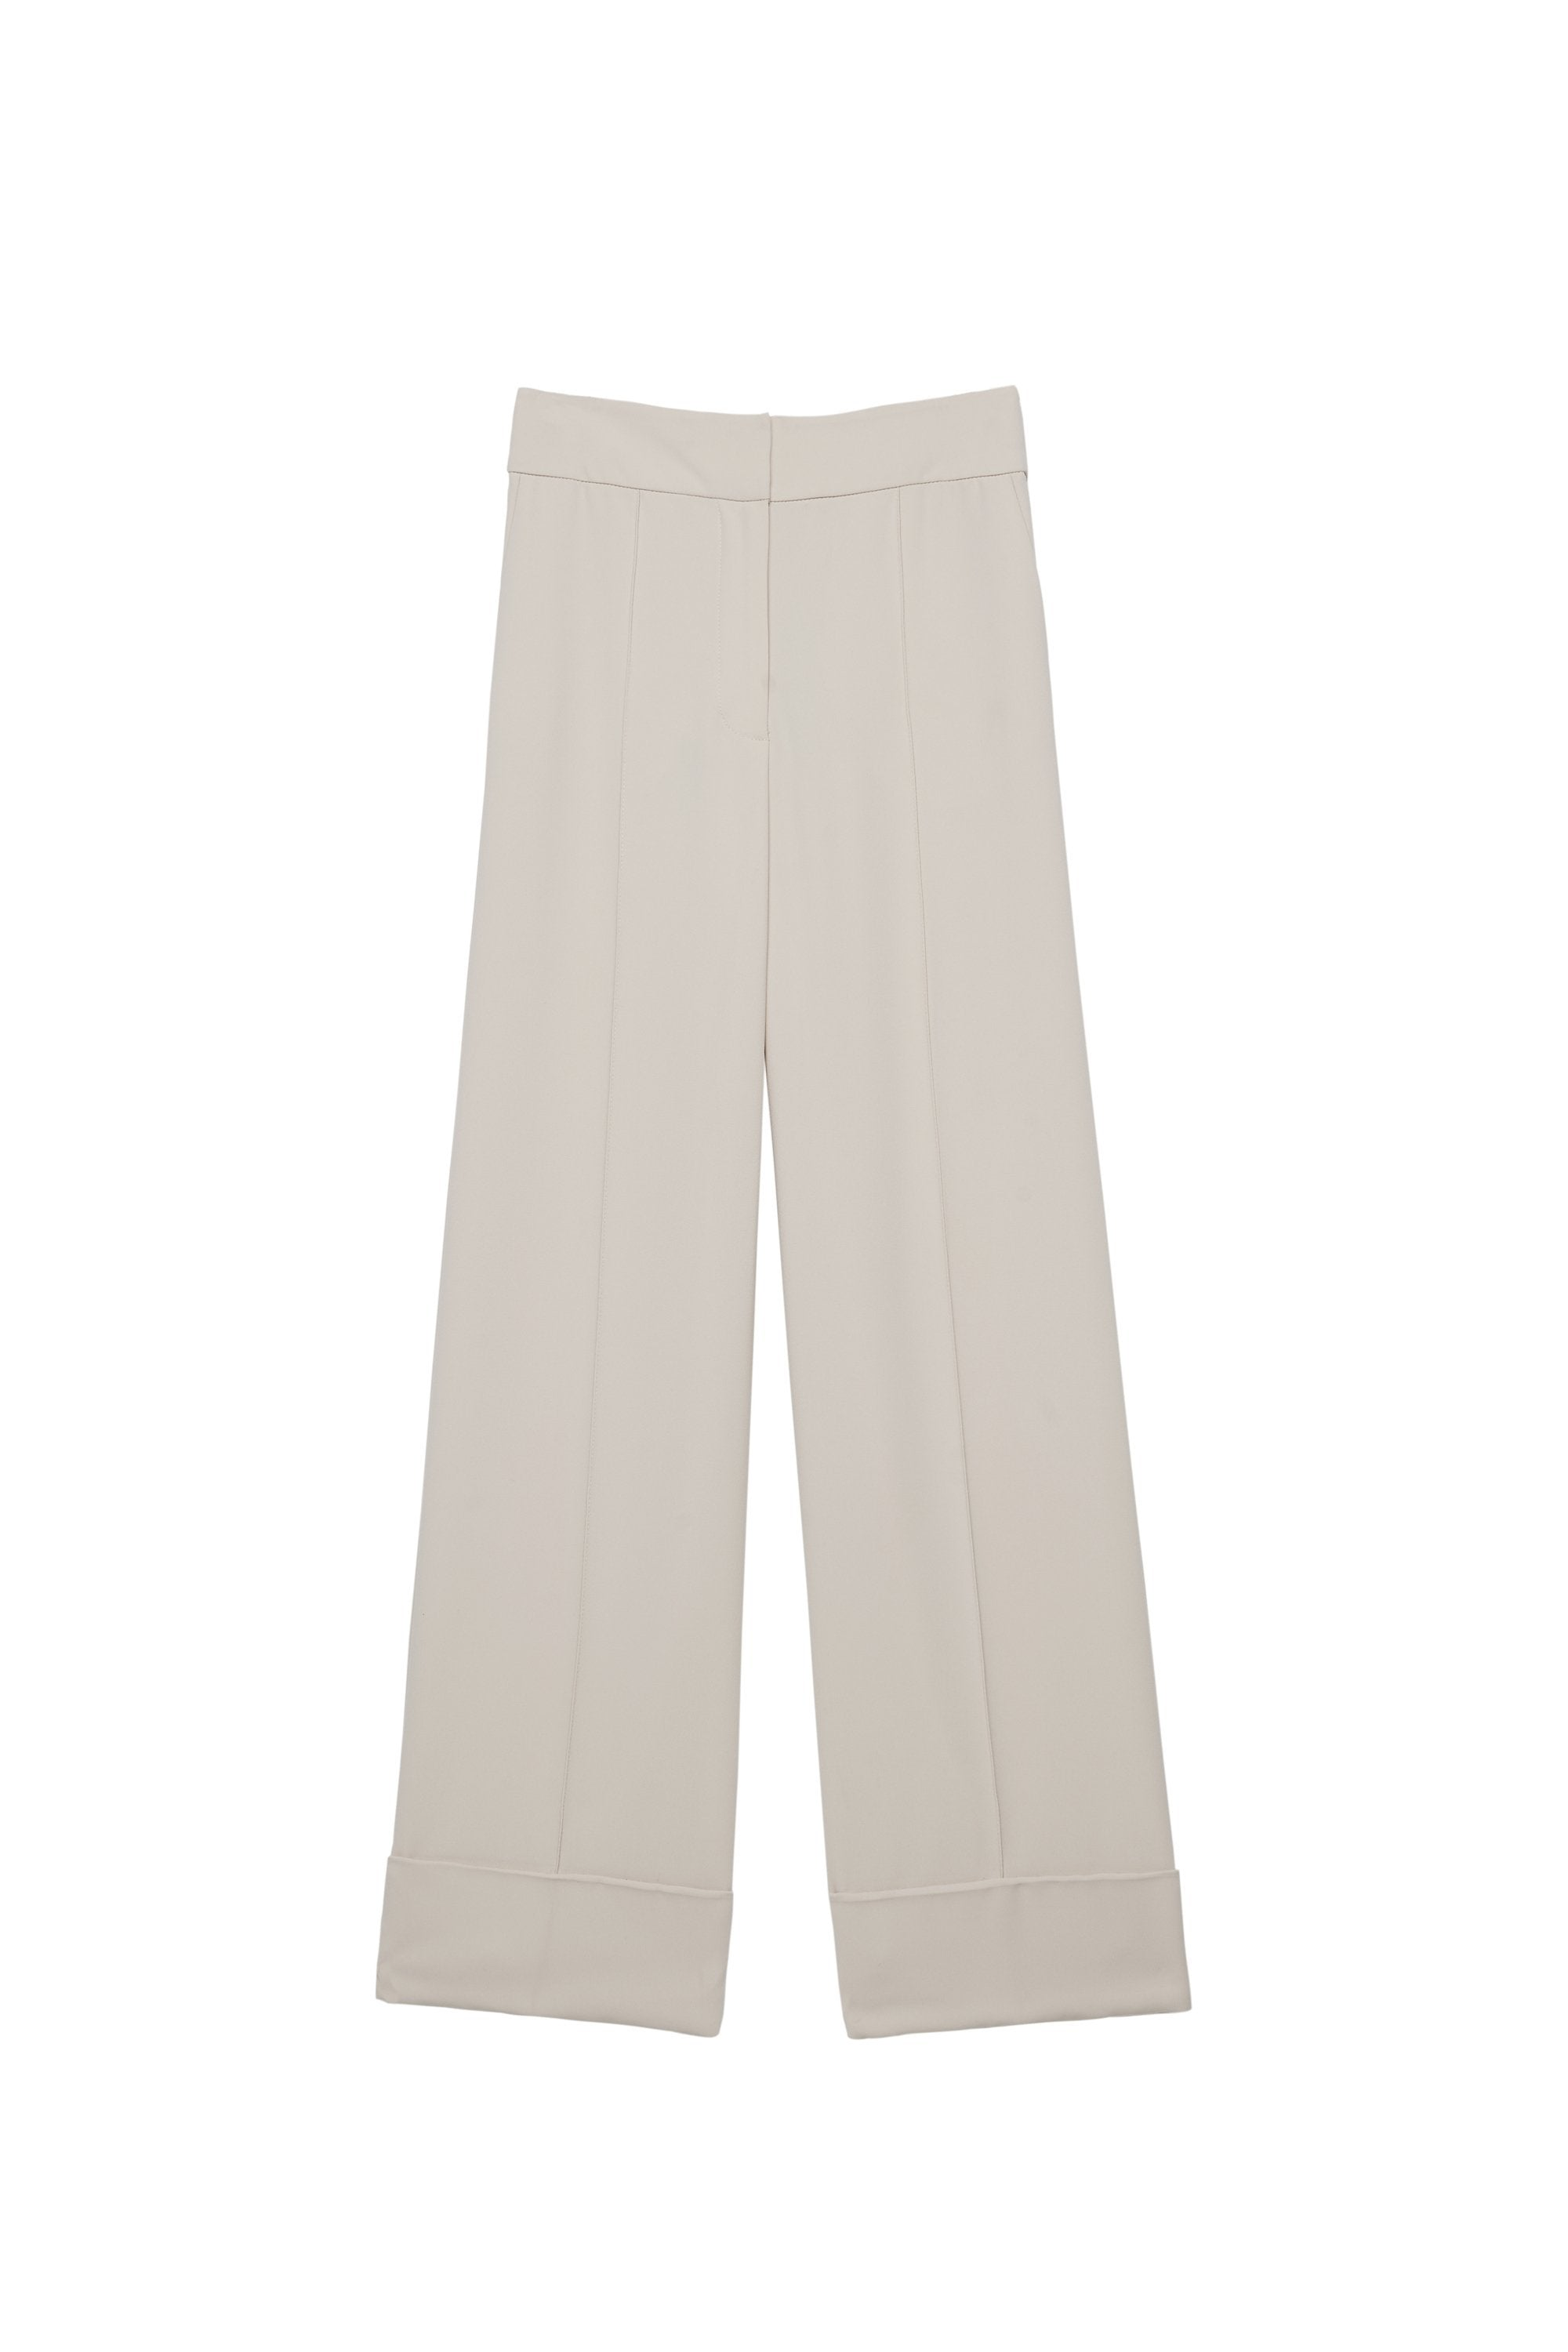 BOGAR TROUSERS - CREAM Trousers Stylein